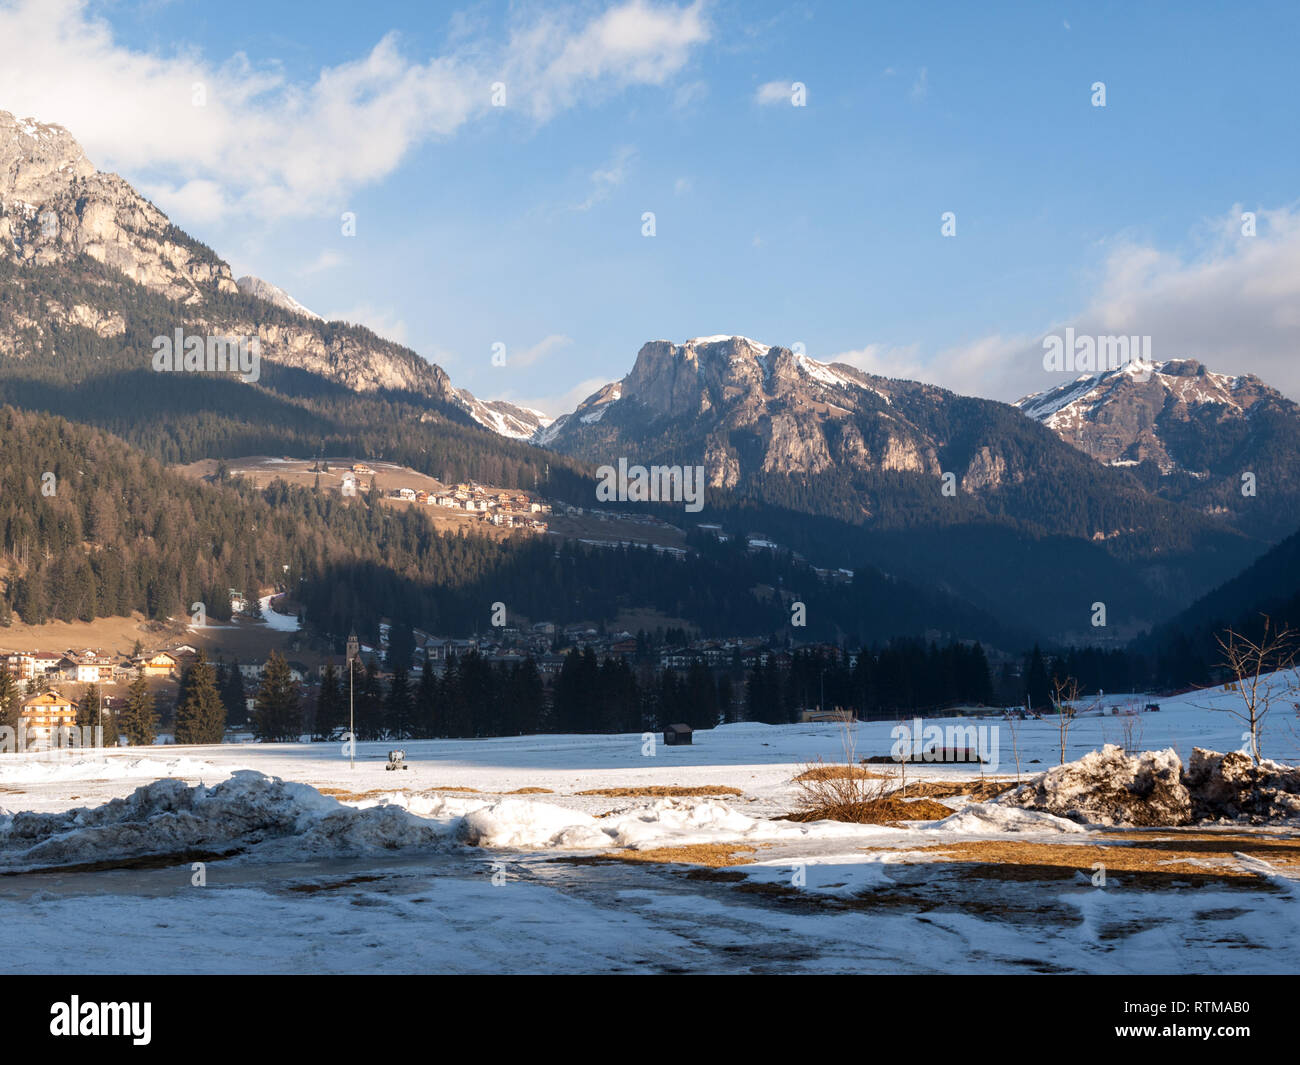 Skiing area in the Dolomites Alps. Overlooking the Sella group  in Val Gardena. Italy - Stock Image